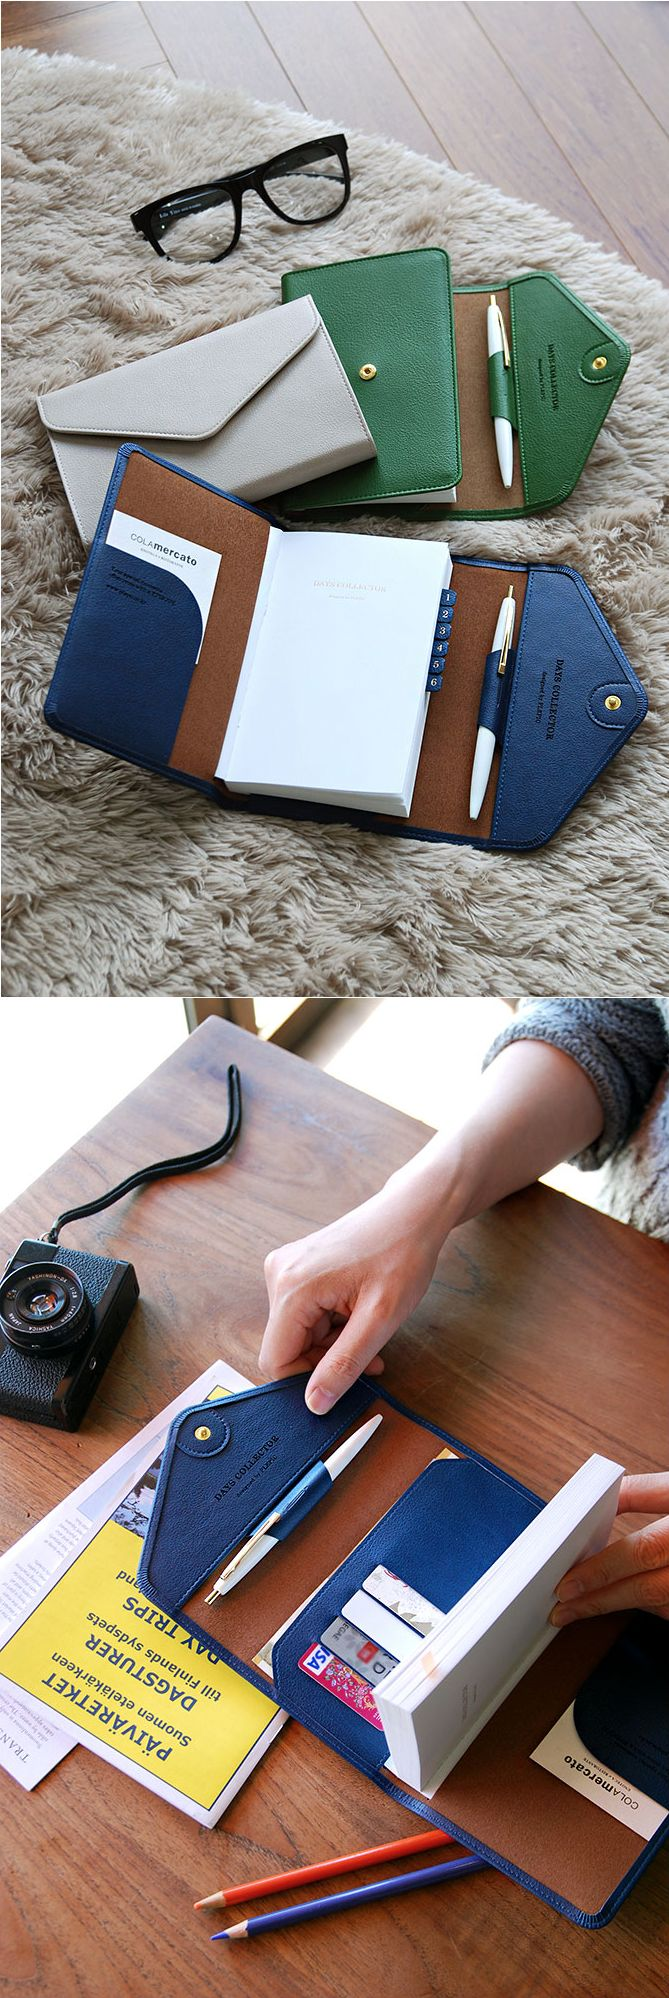 I think I've found the perfect travel accessory! This Leather Diary Wallet v1 is a planner, diary, and wallet combo! To top it off, it's beautiful too! I can leave my bulky wallet at home and slip essential cards and cash in here when I'm on the go. I can even journal my adventures and keep small mementos and souvenirs in the inside pocket! Now I can stay organized during my vacation and keep everything in one place. This will be the perfect travel companion for my next trip. ^.^ Check it…